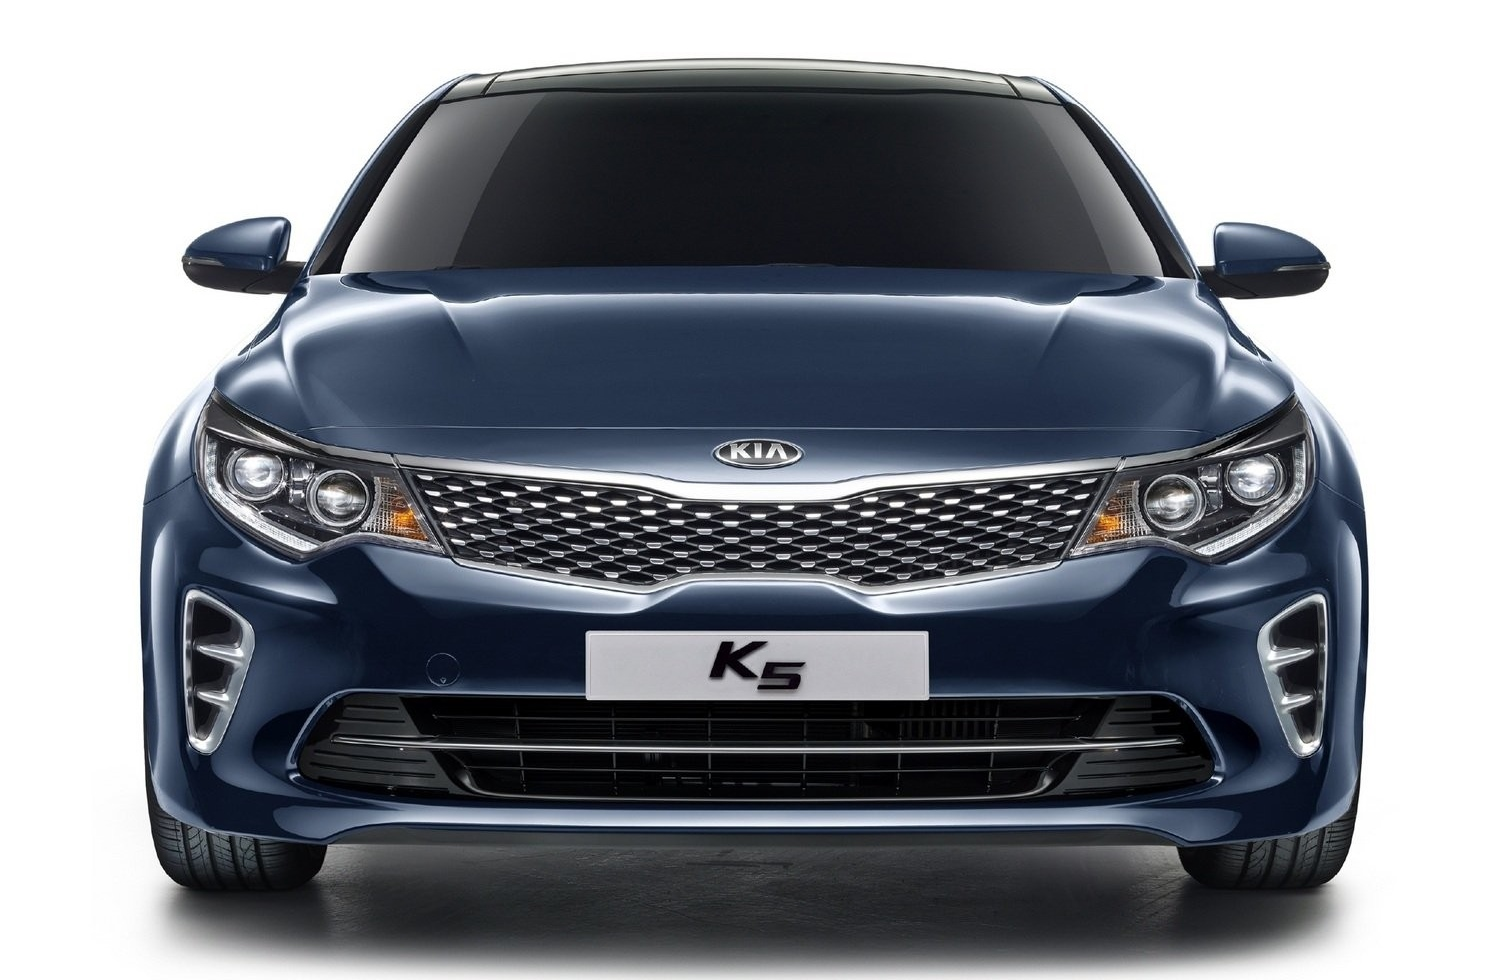 2015 kia k5 pictures information and specs auto. Black Bedroom Furniture Sets. Home Design Ideas